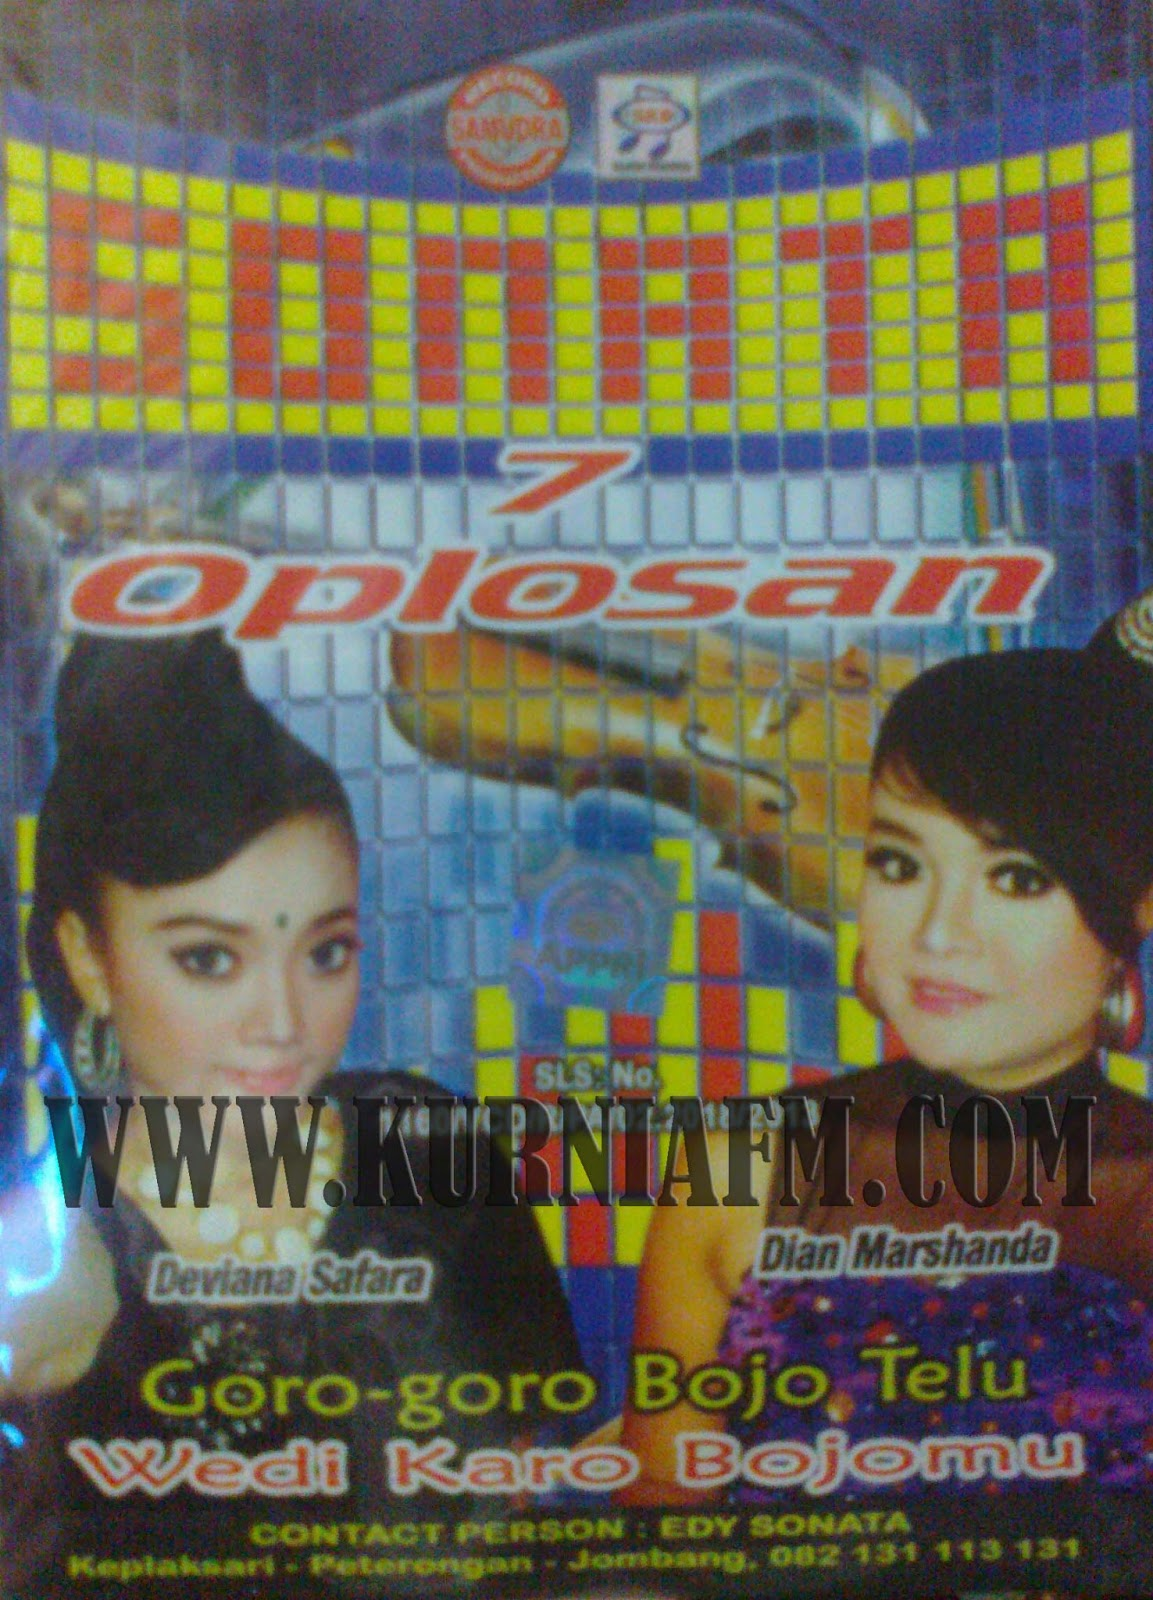 Download Mp3 Album Terbaru Om.Sonata Vol 7 Full Album